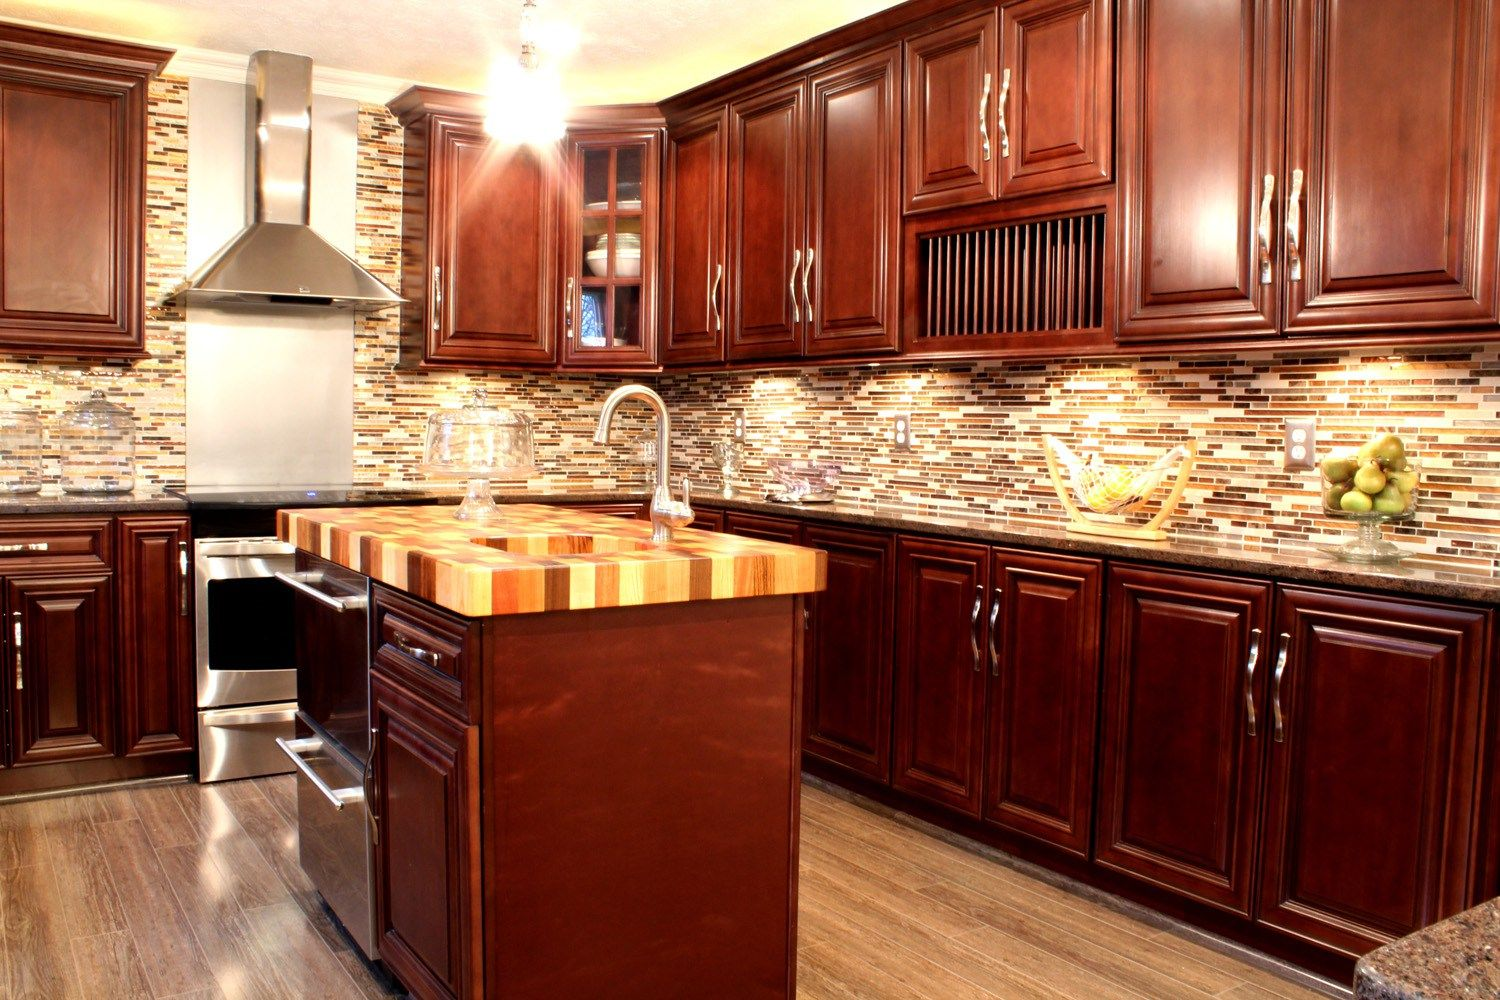 Pin By Amys Lifevantage On Kitchen Remodel Pinterest Custom - Kitchen cabinets columbus ohio